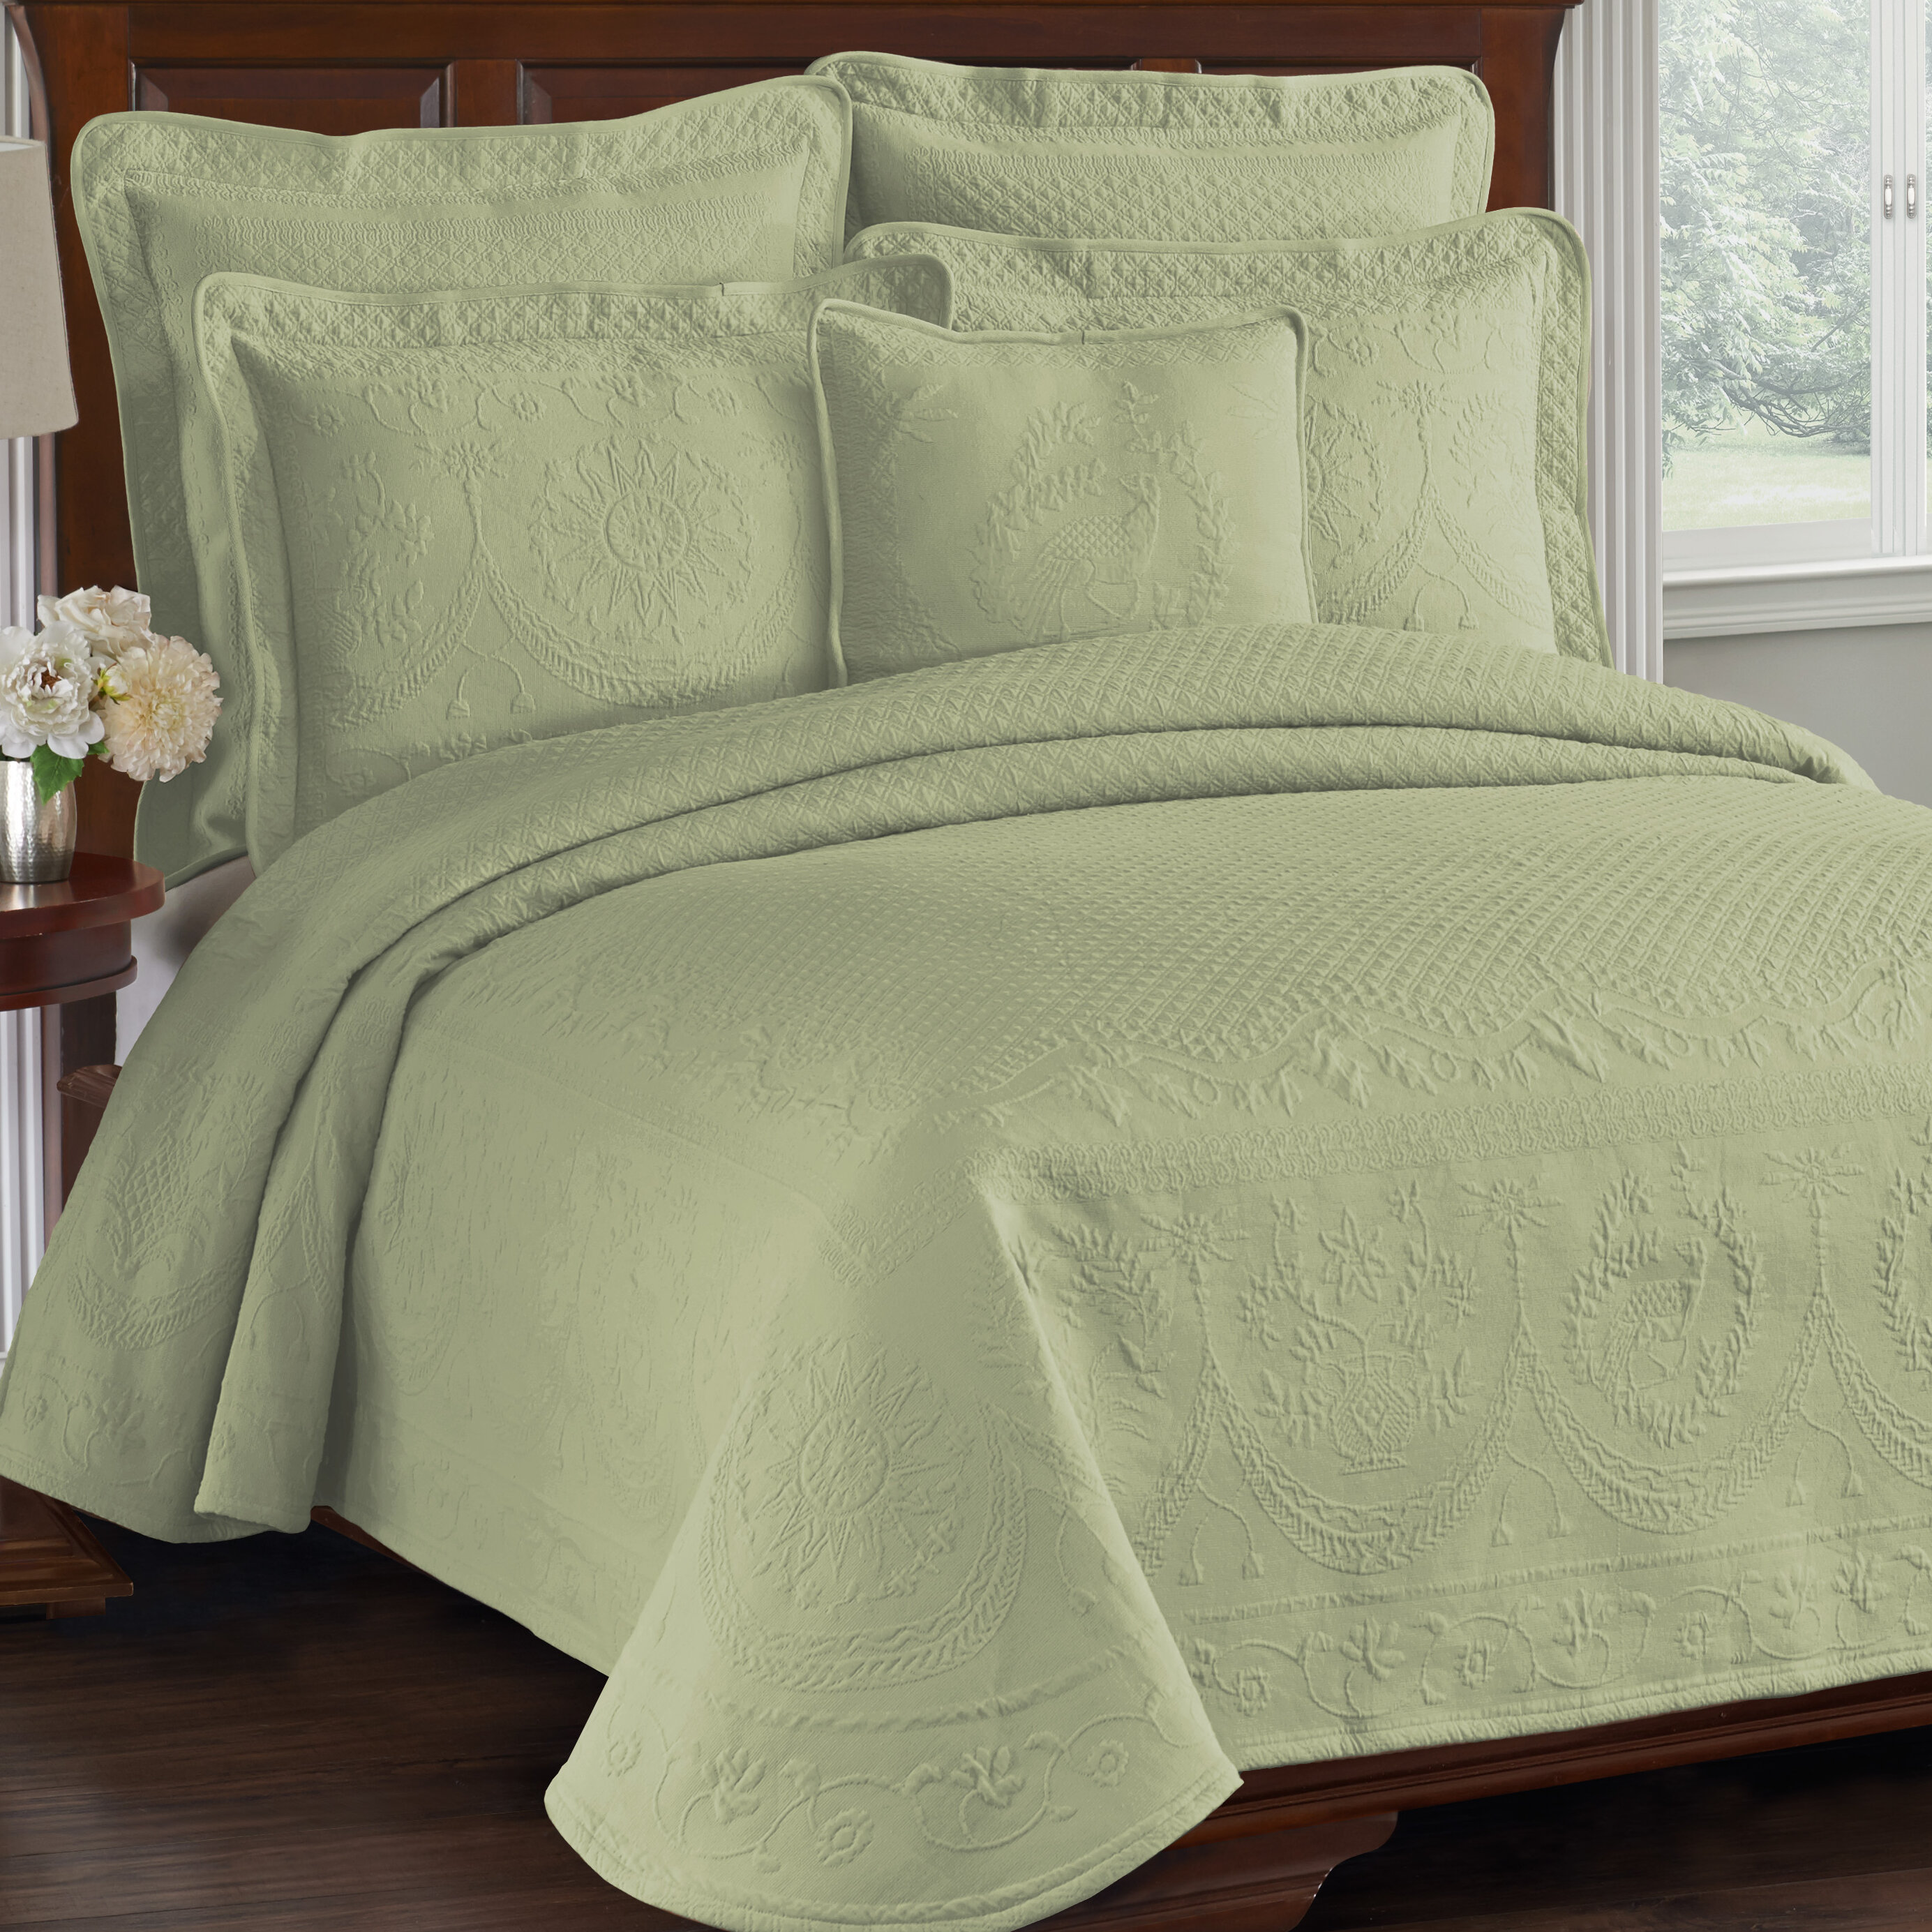 King Size Southwest Bedding Wayfair